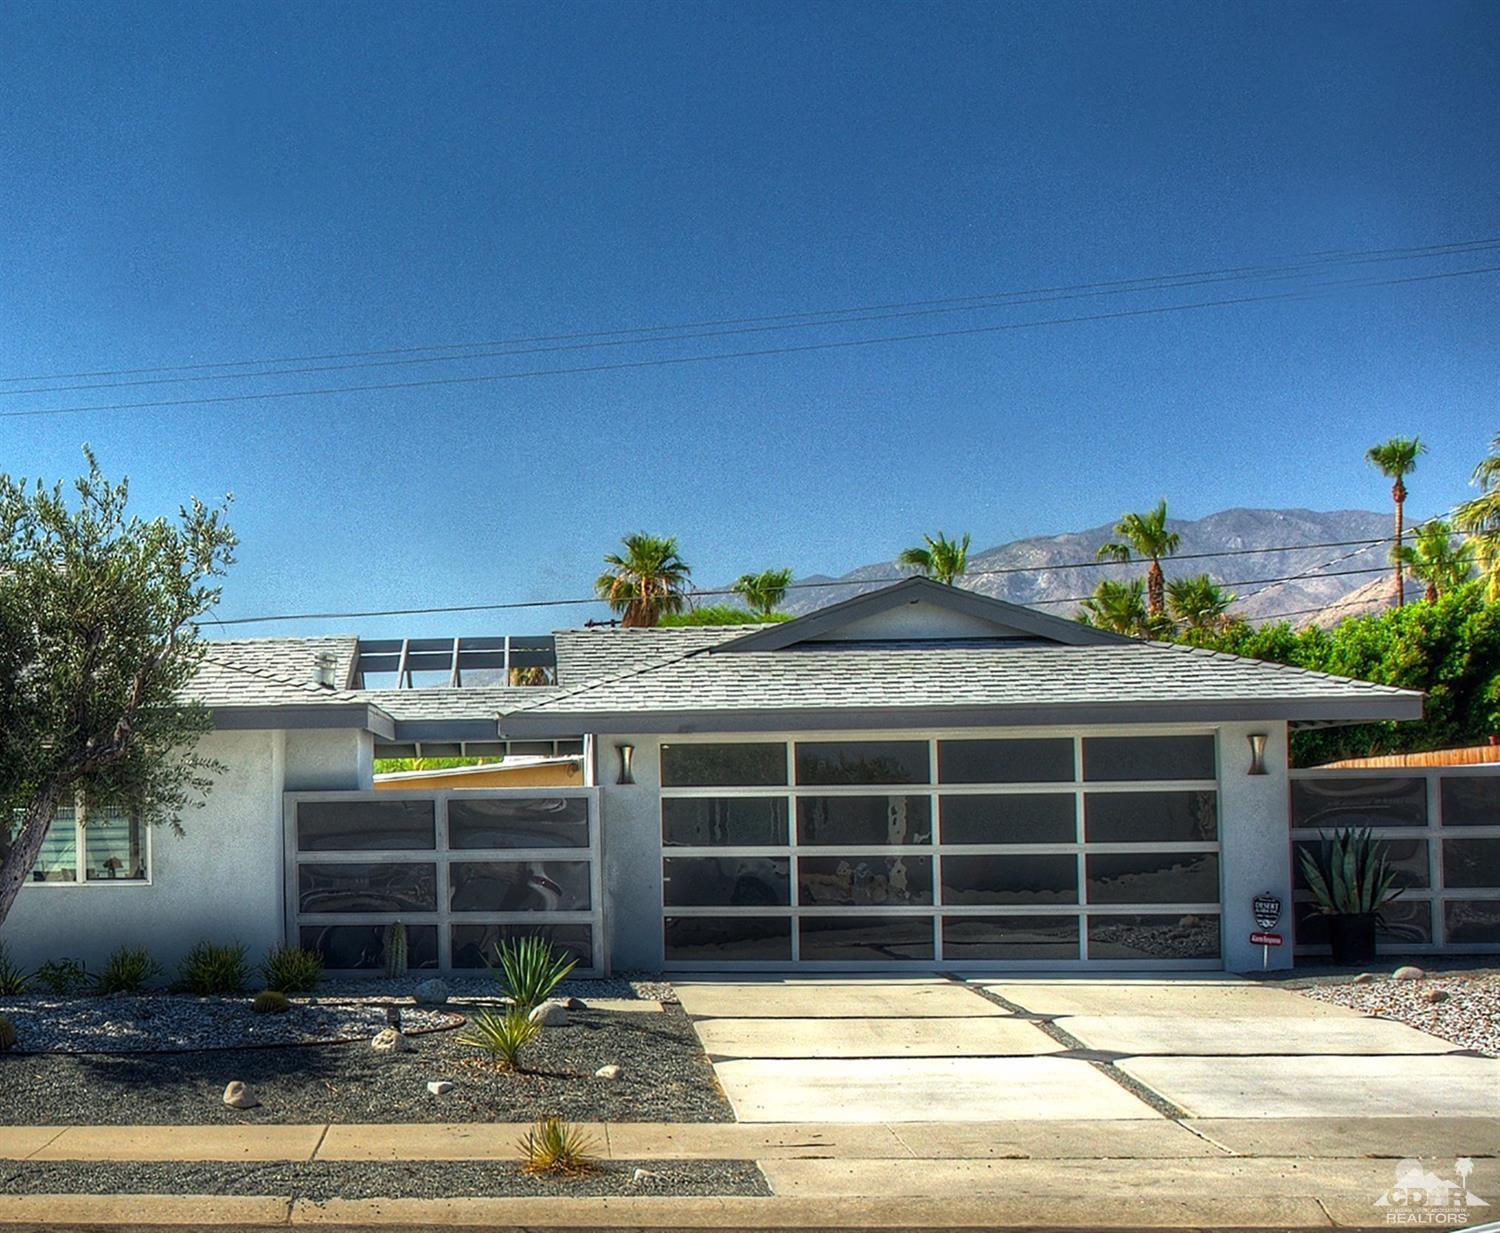 465 E Simms Road, Palm Springs, California 92262, 3 Bedrooms Bedrooms, ,2 BathroomsBathrooms,Residential,For Sale,465 E Simms Road,219041395